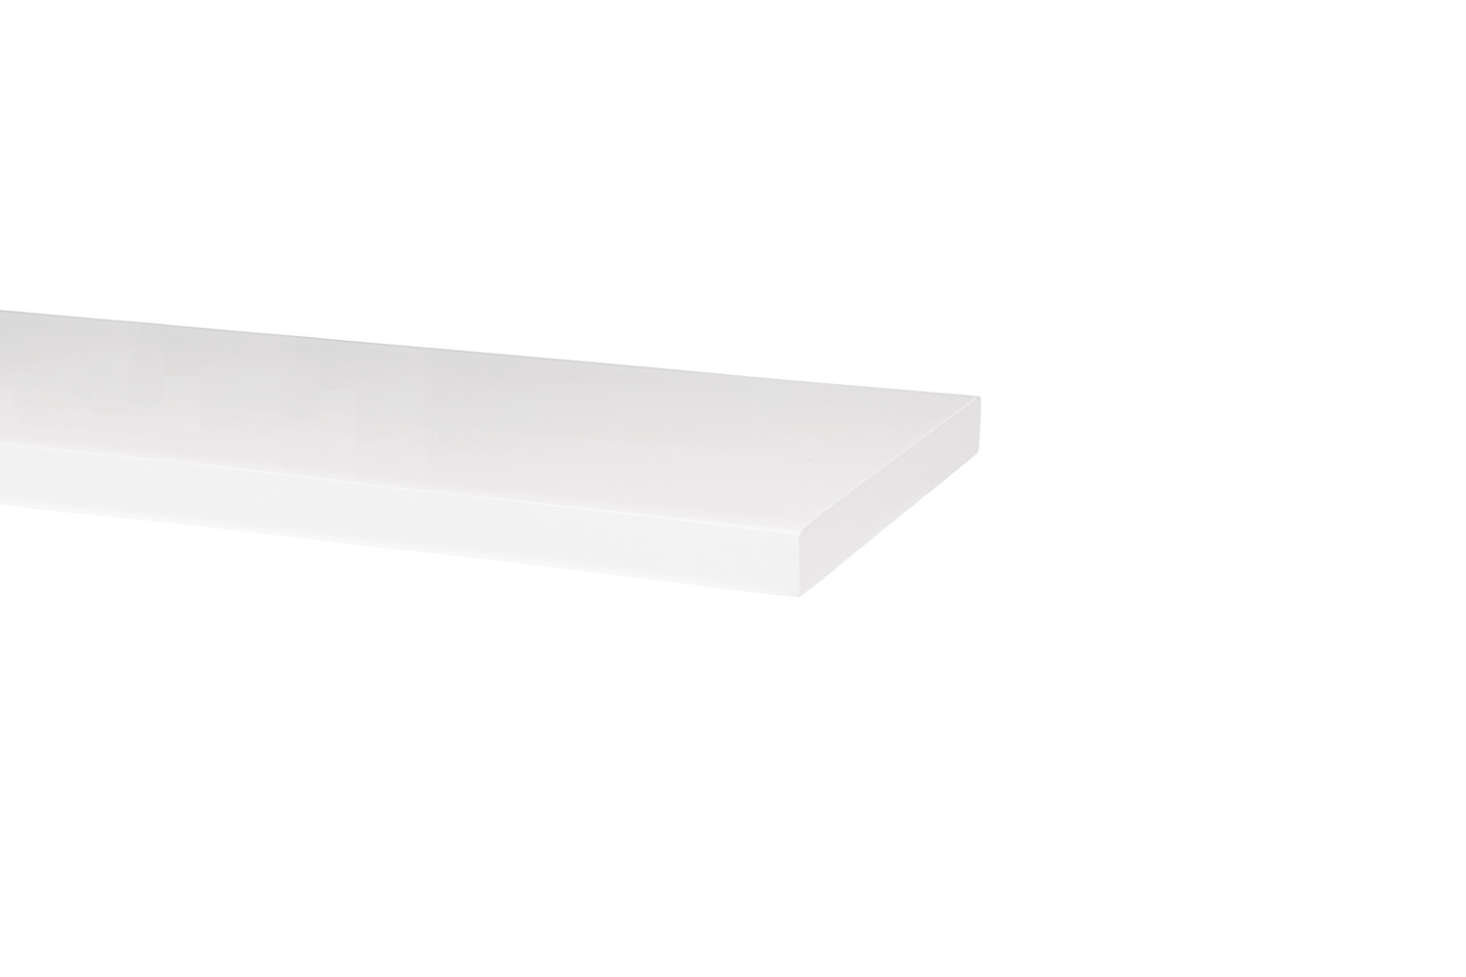 For similar white floating shelves, the White Lacquer Shelf is available in eight- and -inch lengths starting at $39 (currently on sale) at Rejuvenation.